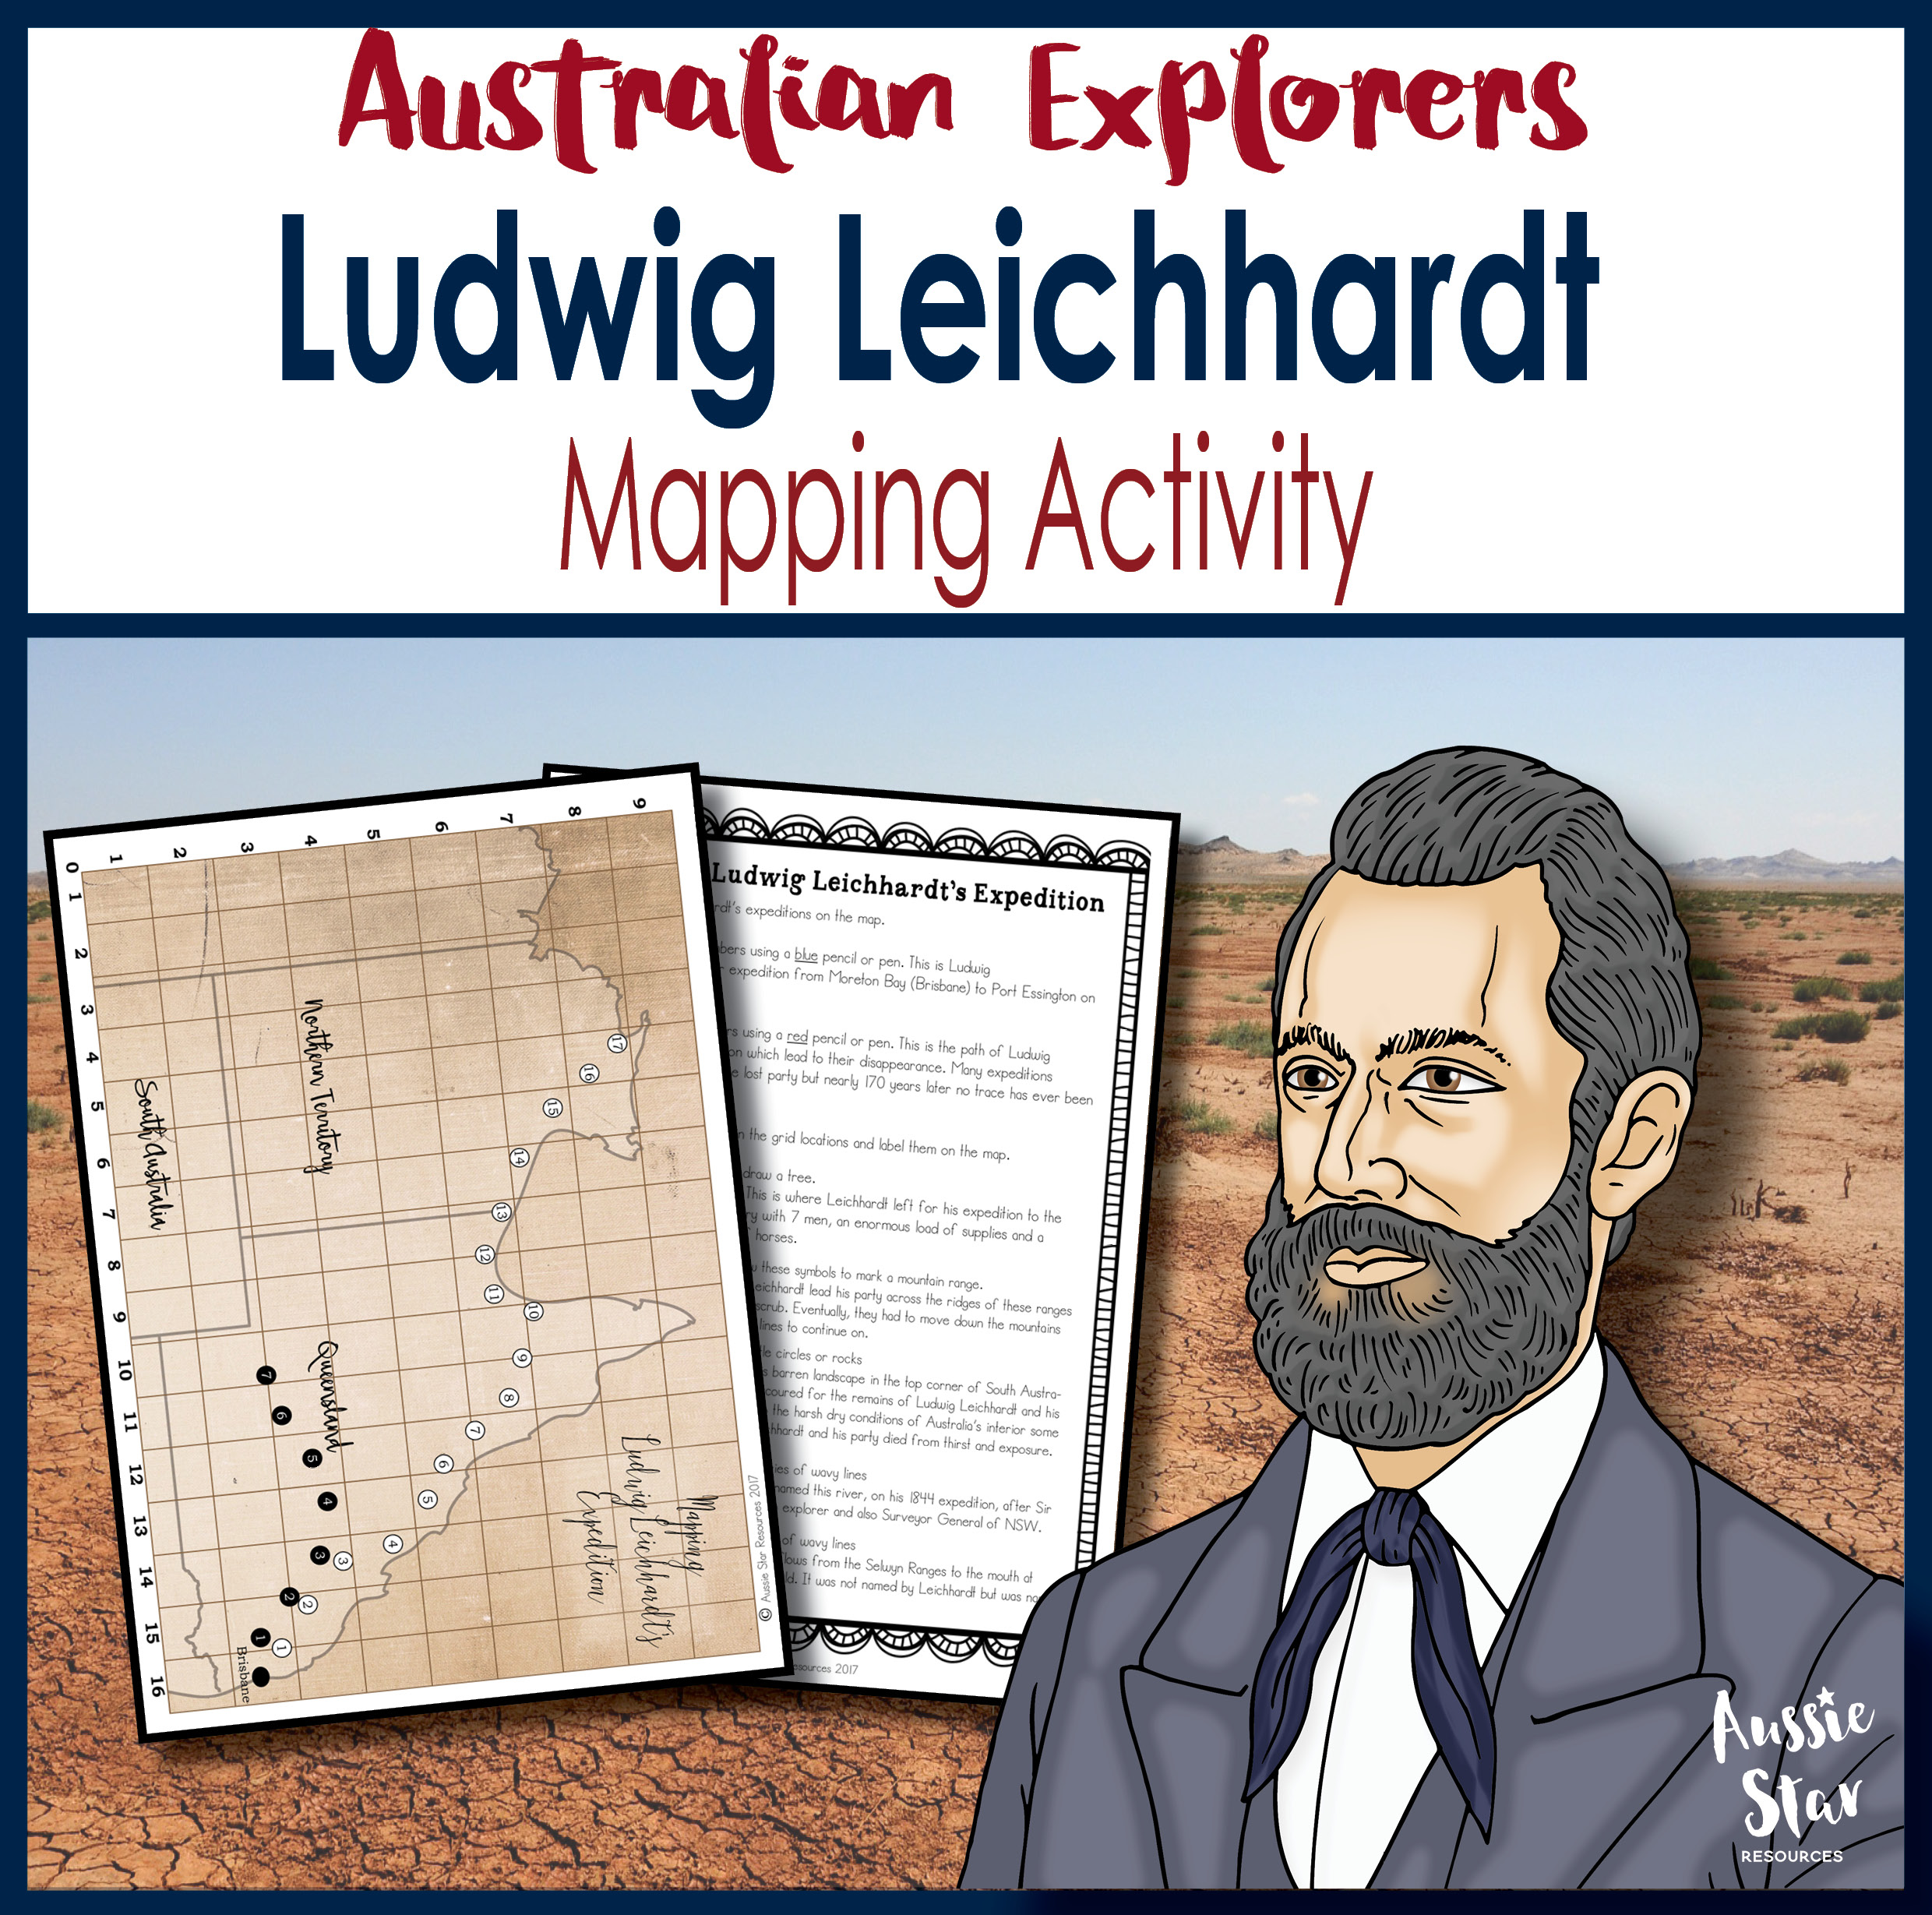 Ludwig Leichhardt Expedition Mapping Activity